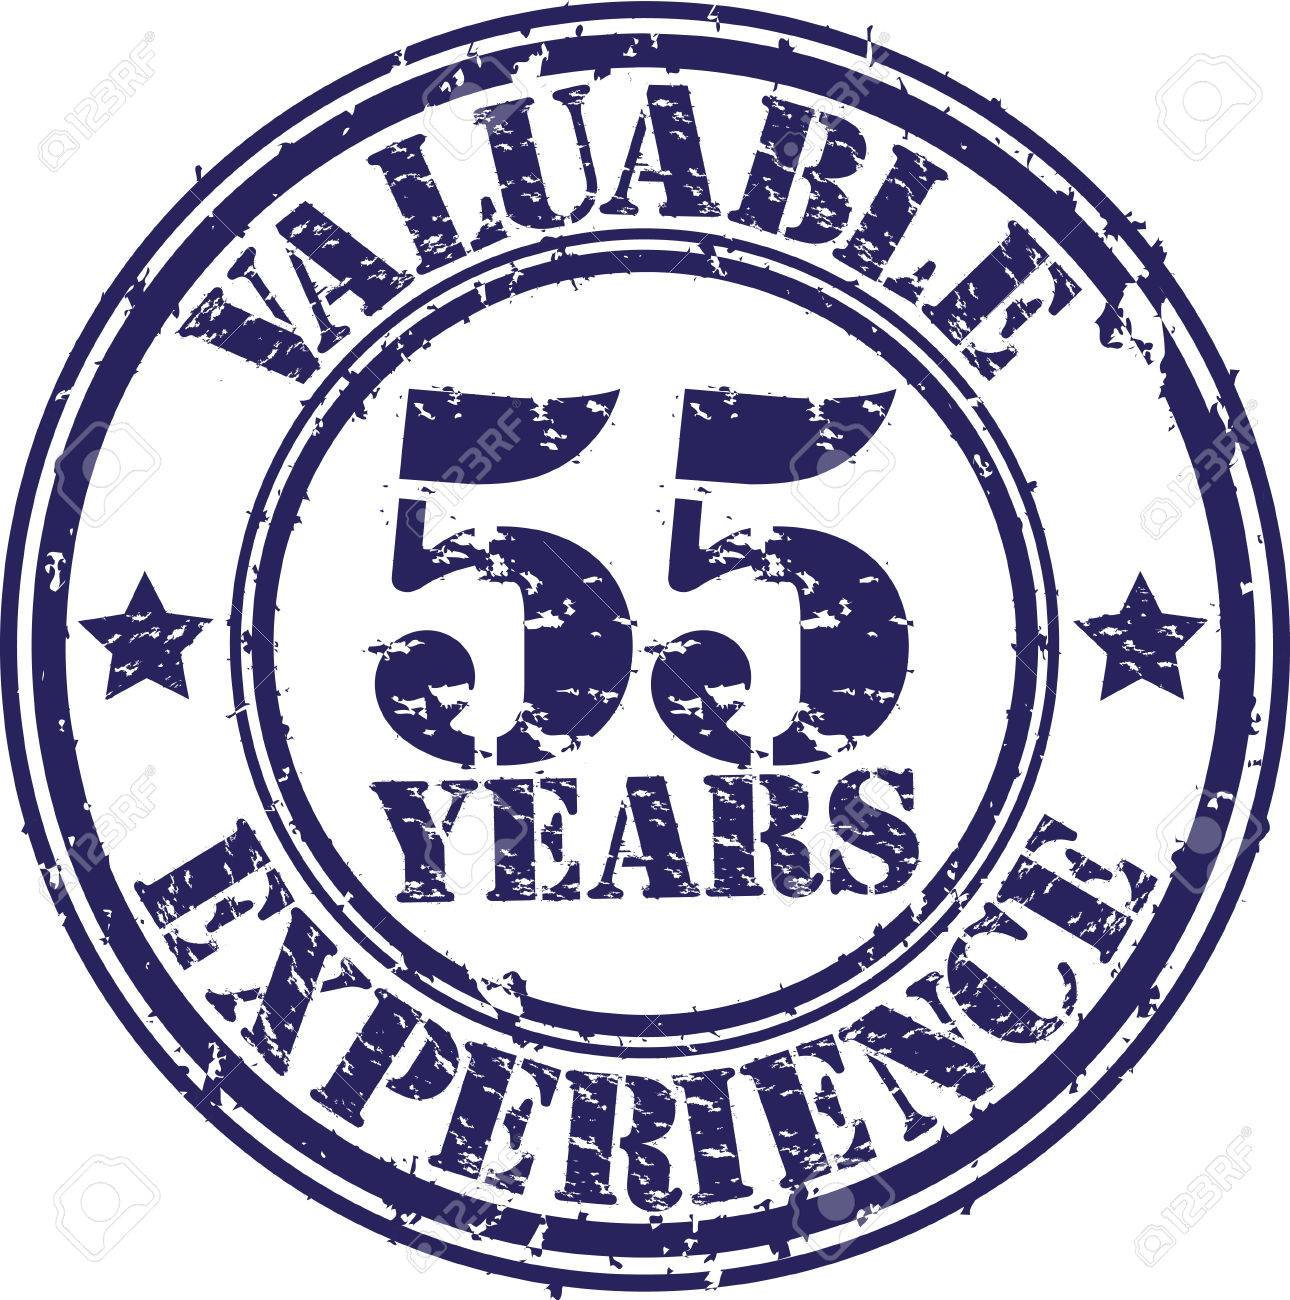 Valuable 55 Years Of Experience Rubber Stamp Vector Illustration Stock